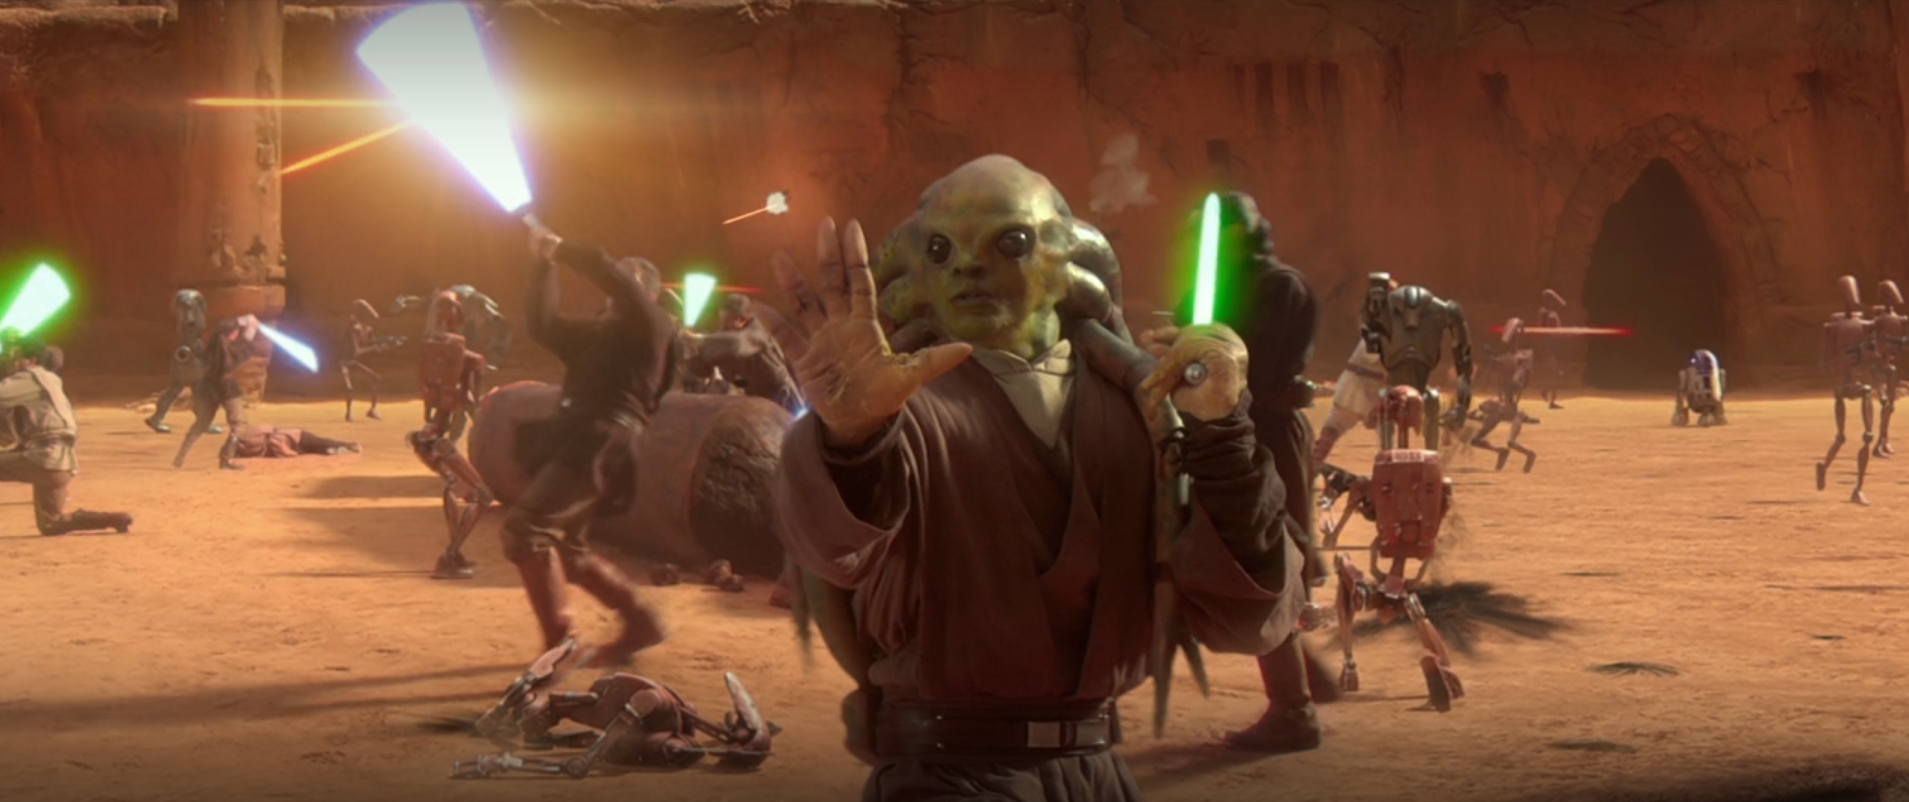 Kit Fisto uses the Force on the battle droid version of C-3PO in Star Wars: Attack of the Clones